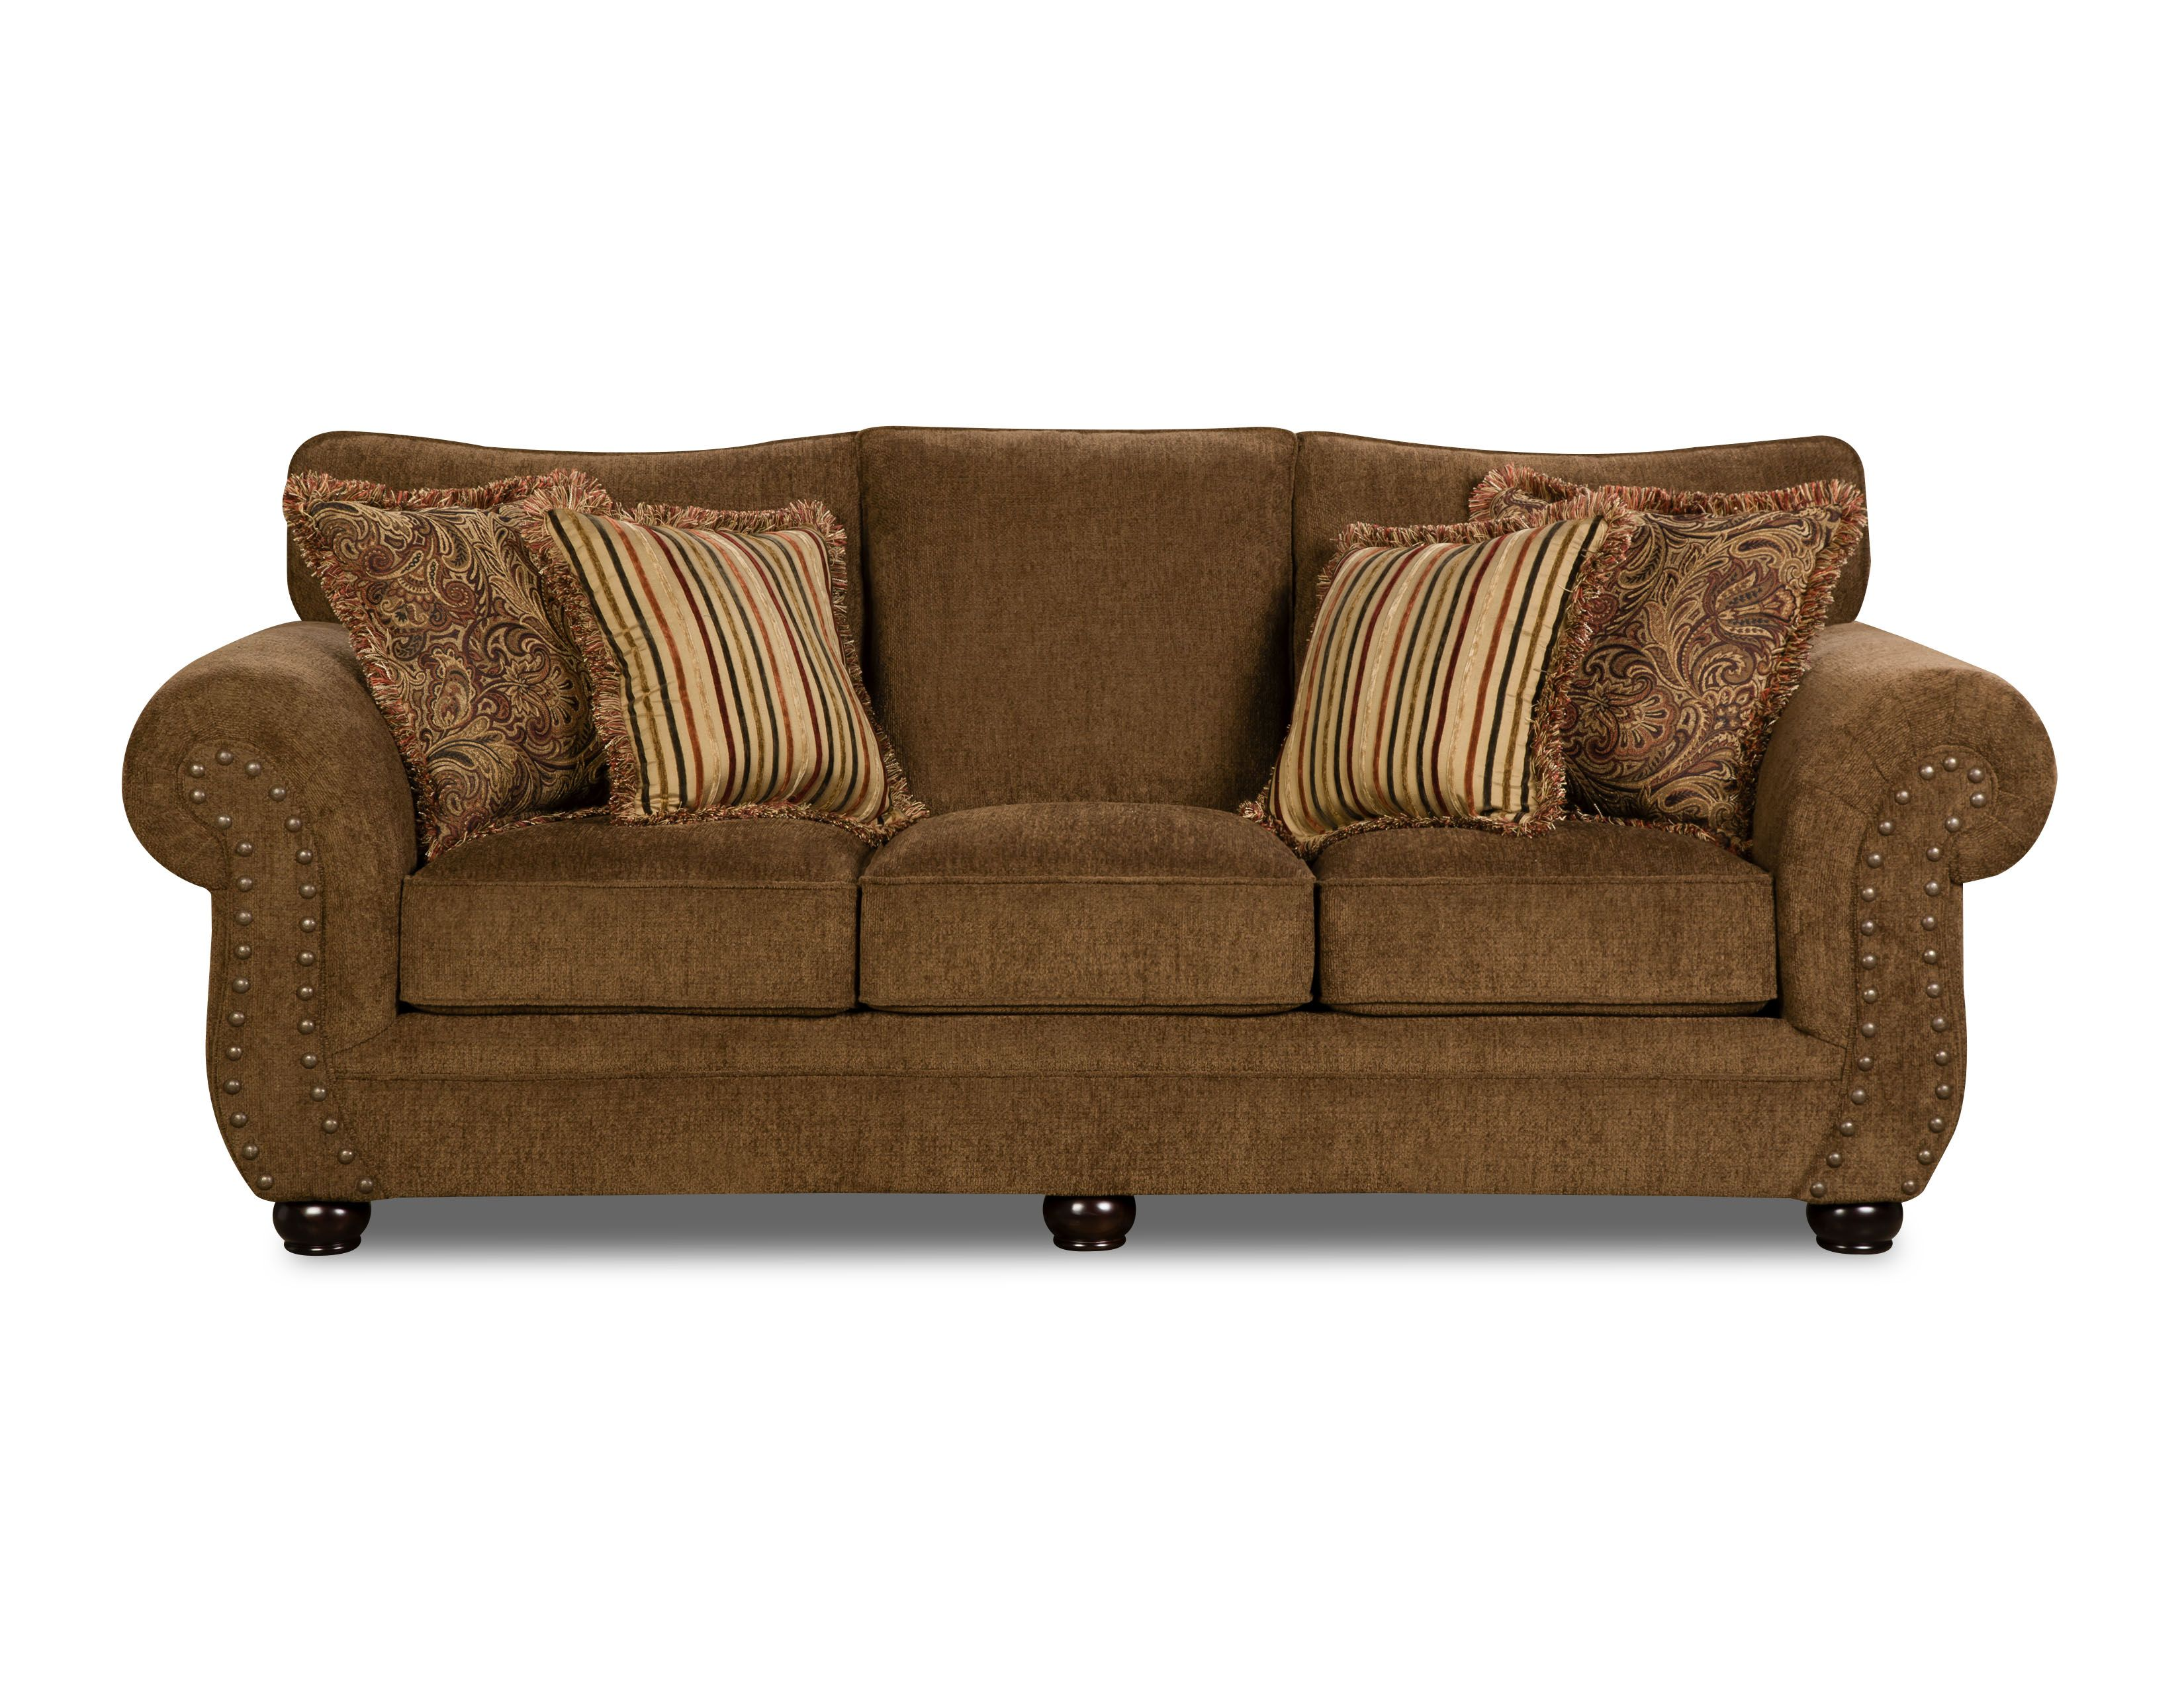 VICTORIACHOCOLATE SOFA Sofas and Chairs Pinterest